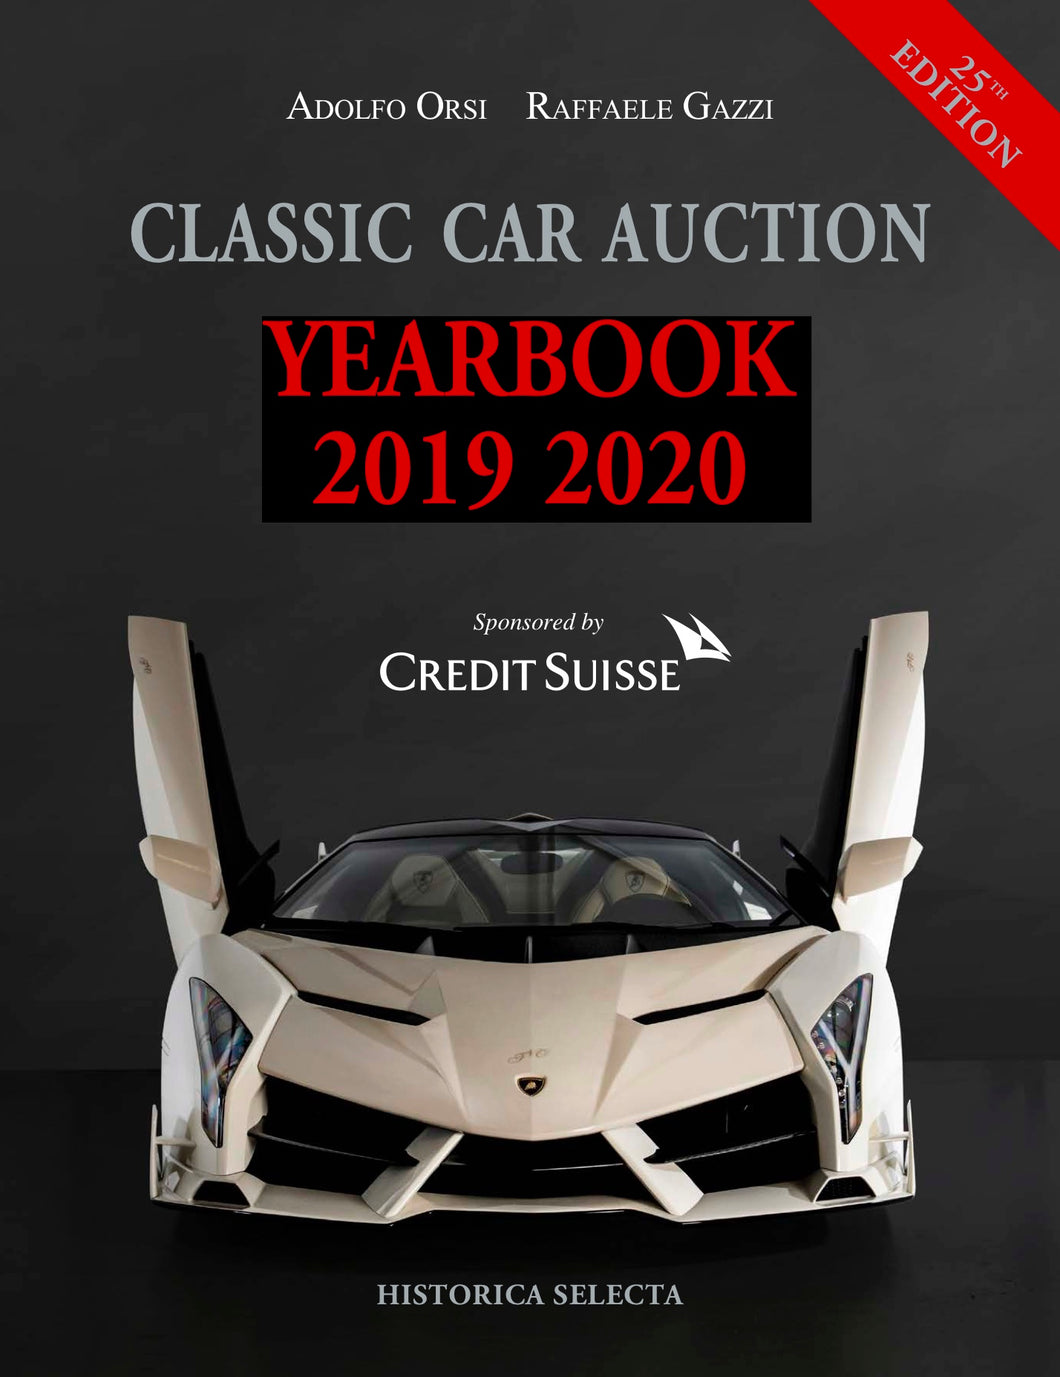 Classic Car Auction Yearbook 2019 - 2020